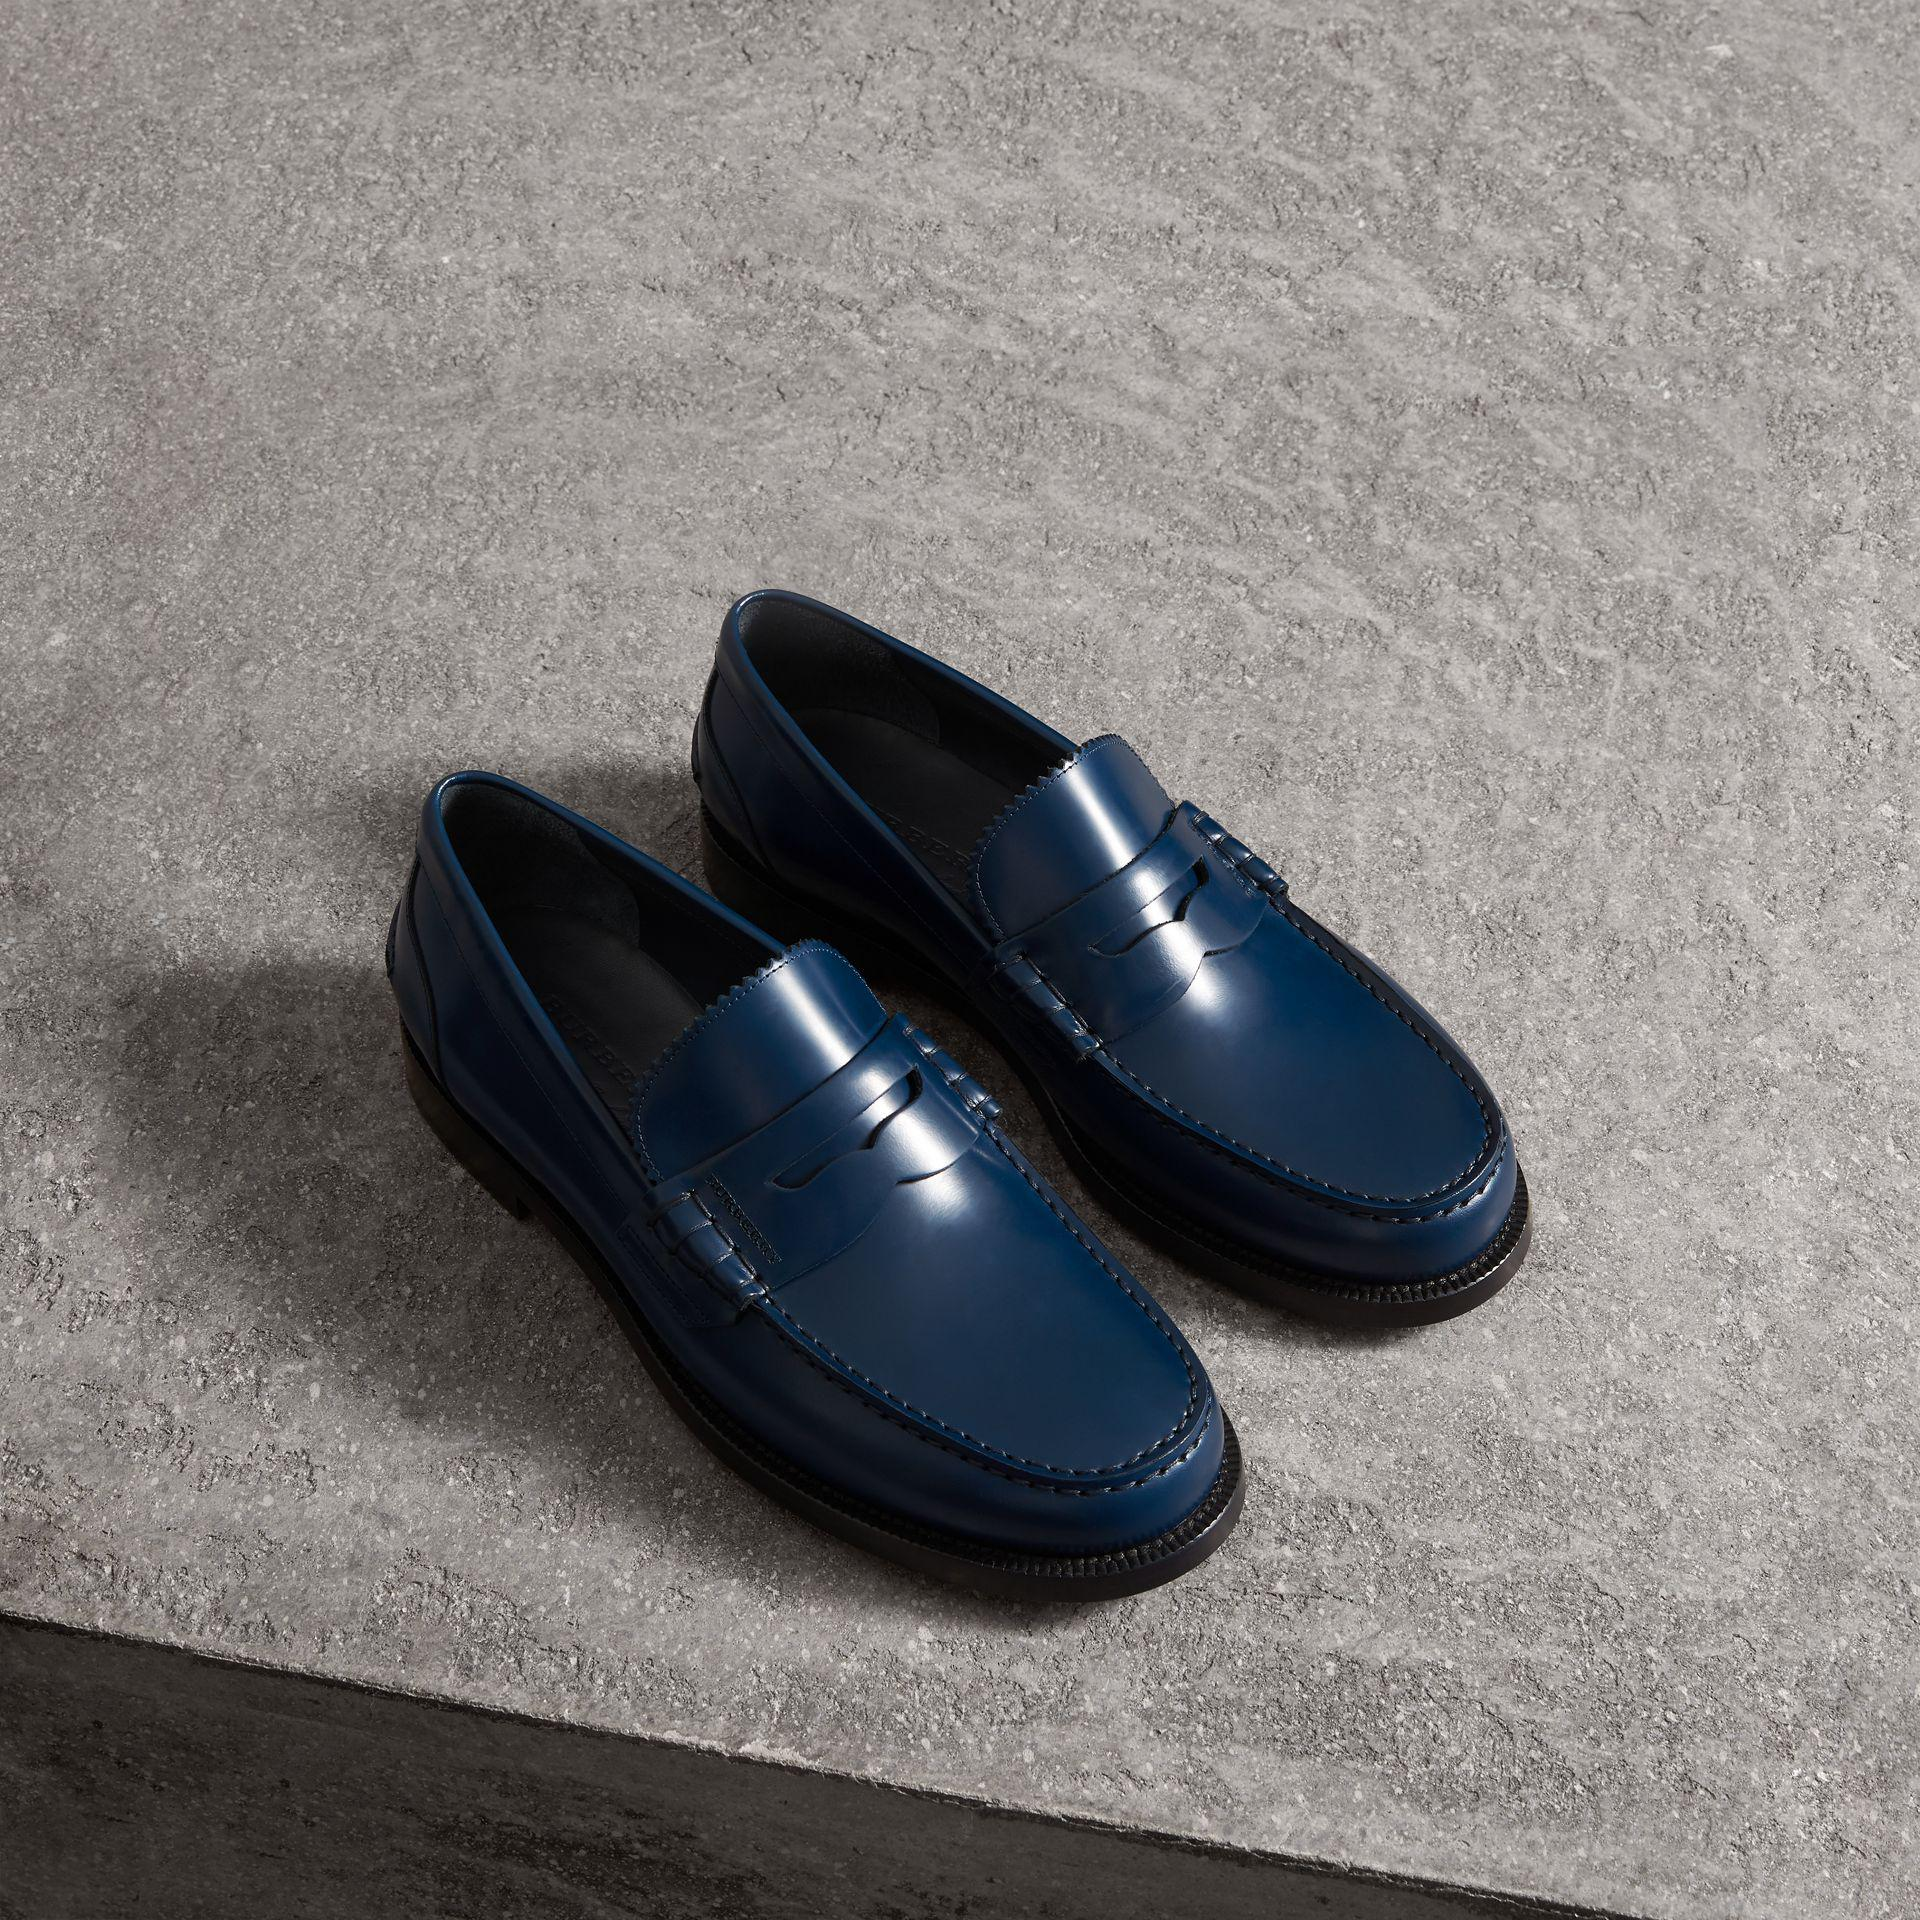 19544161176 Burberry Kiltie Fringe Leather Loafers in Blue for Men - Lyst